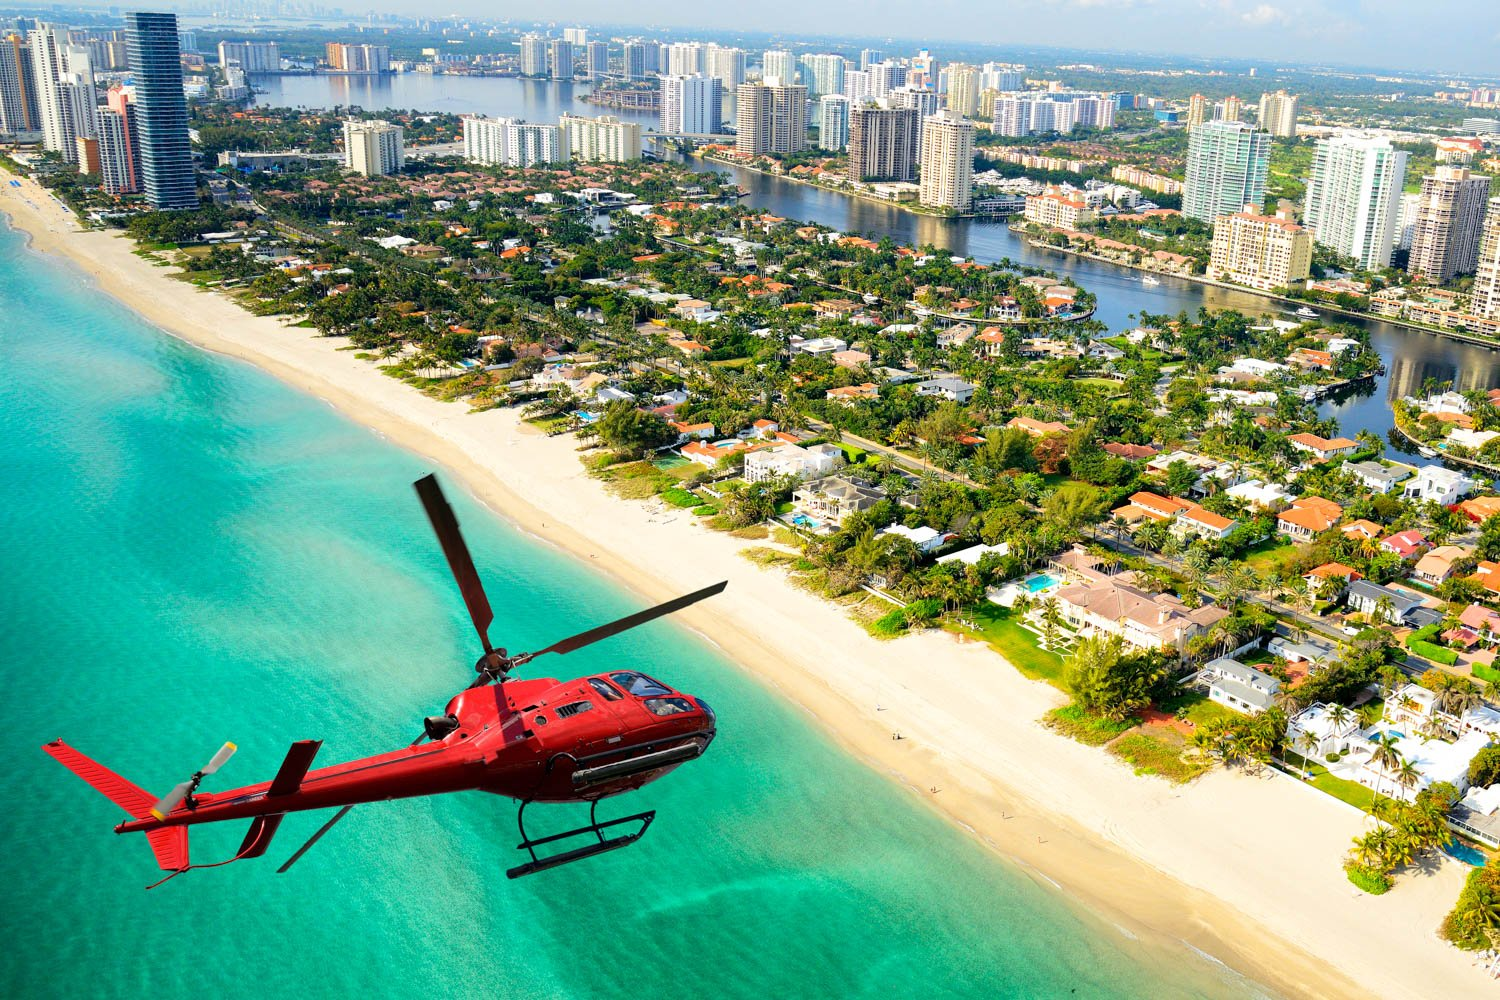 This helicopter over the skyline is one of the favorite Miami excursions. You can see all the things to do in Miami while high in the sky.